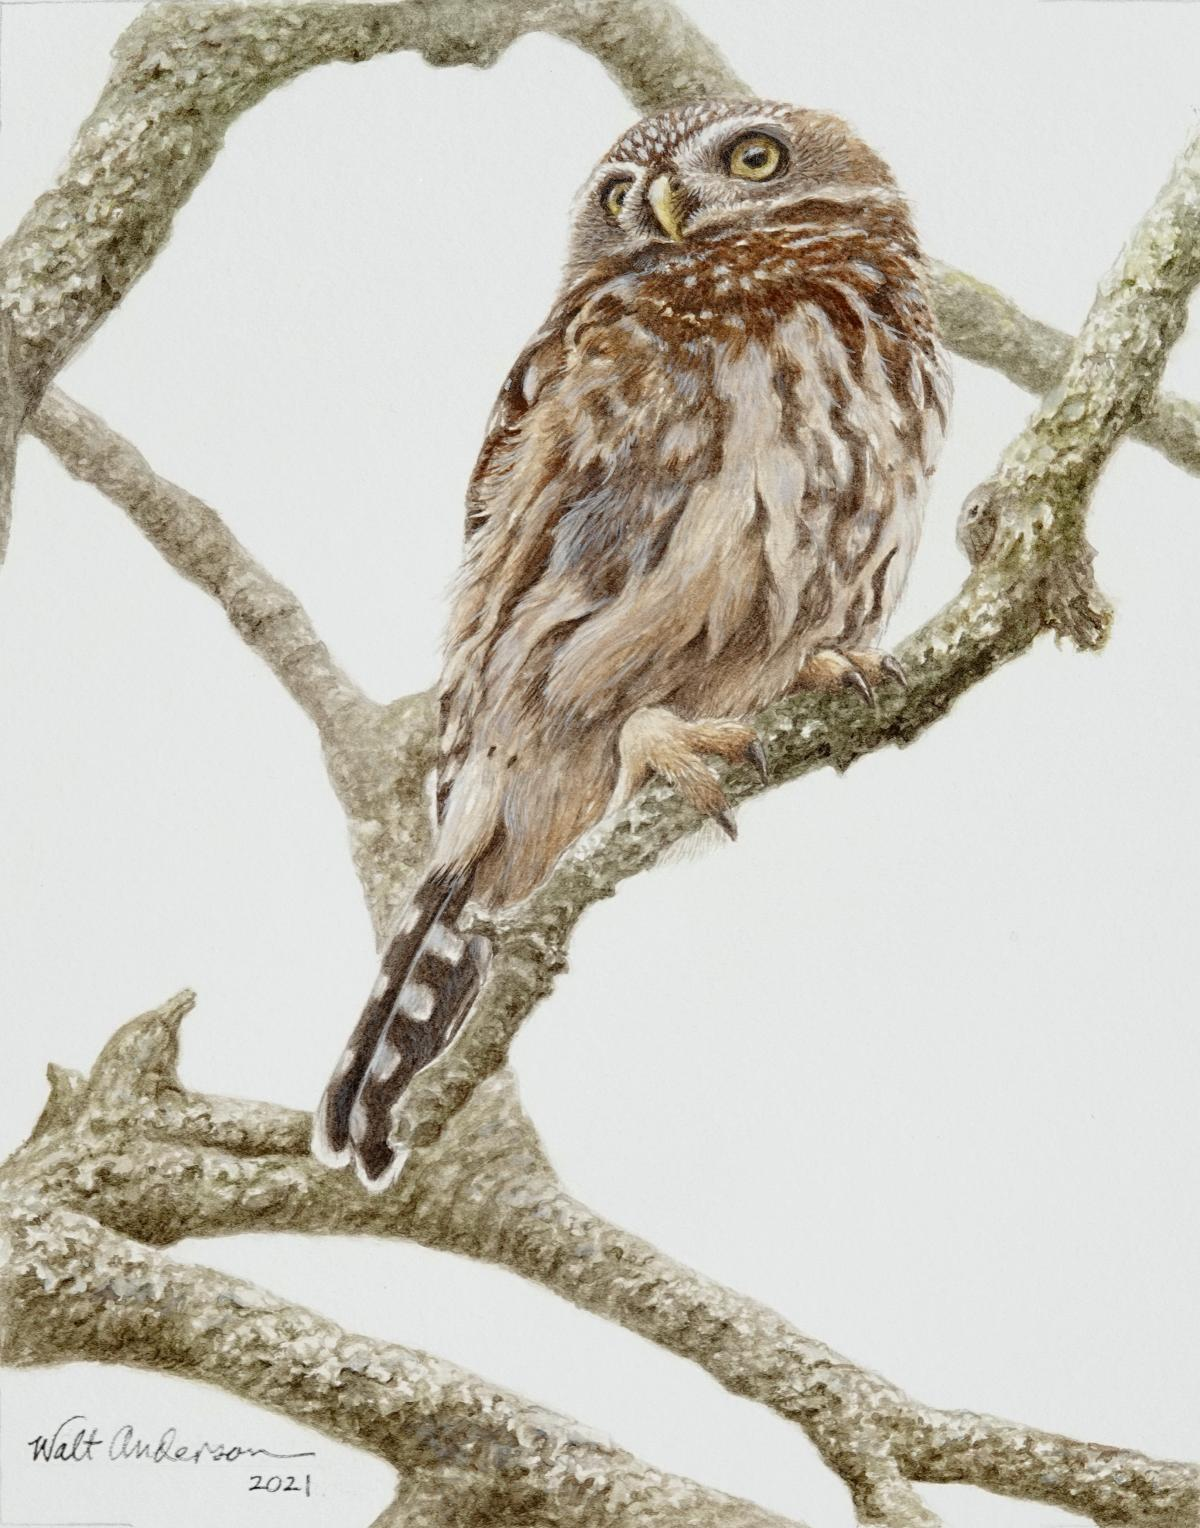 Pint-sized Predator: Pearl-spotted Owlet | Wallhanging by Walt Anderson | Artists for Conservation 2021